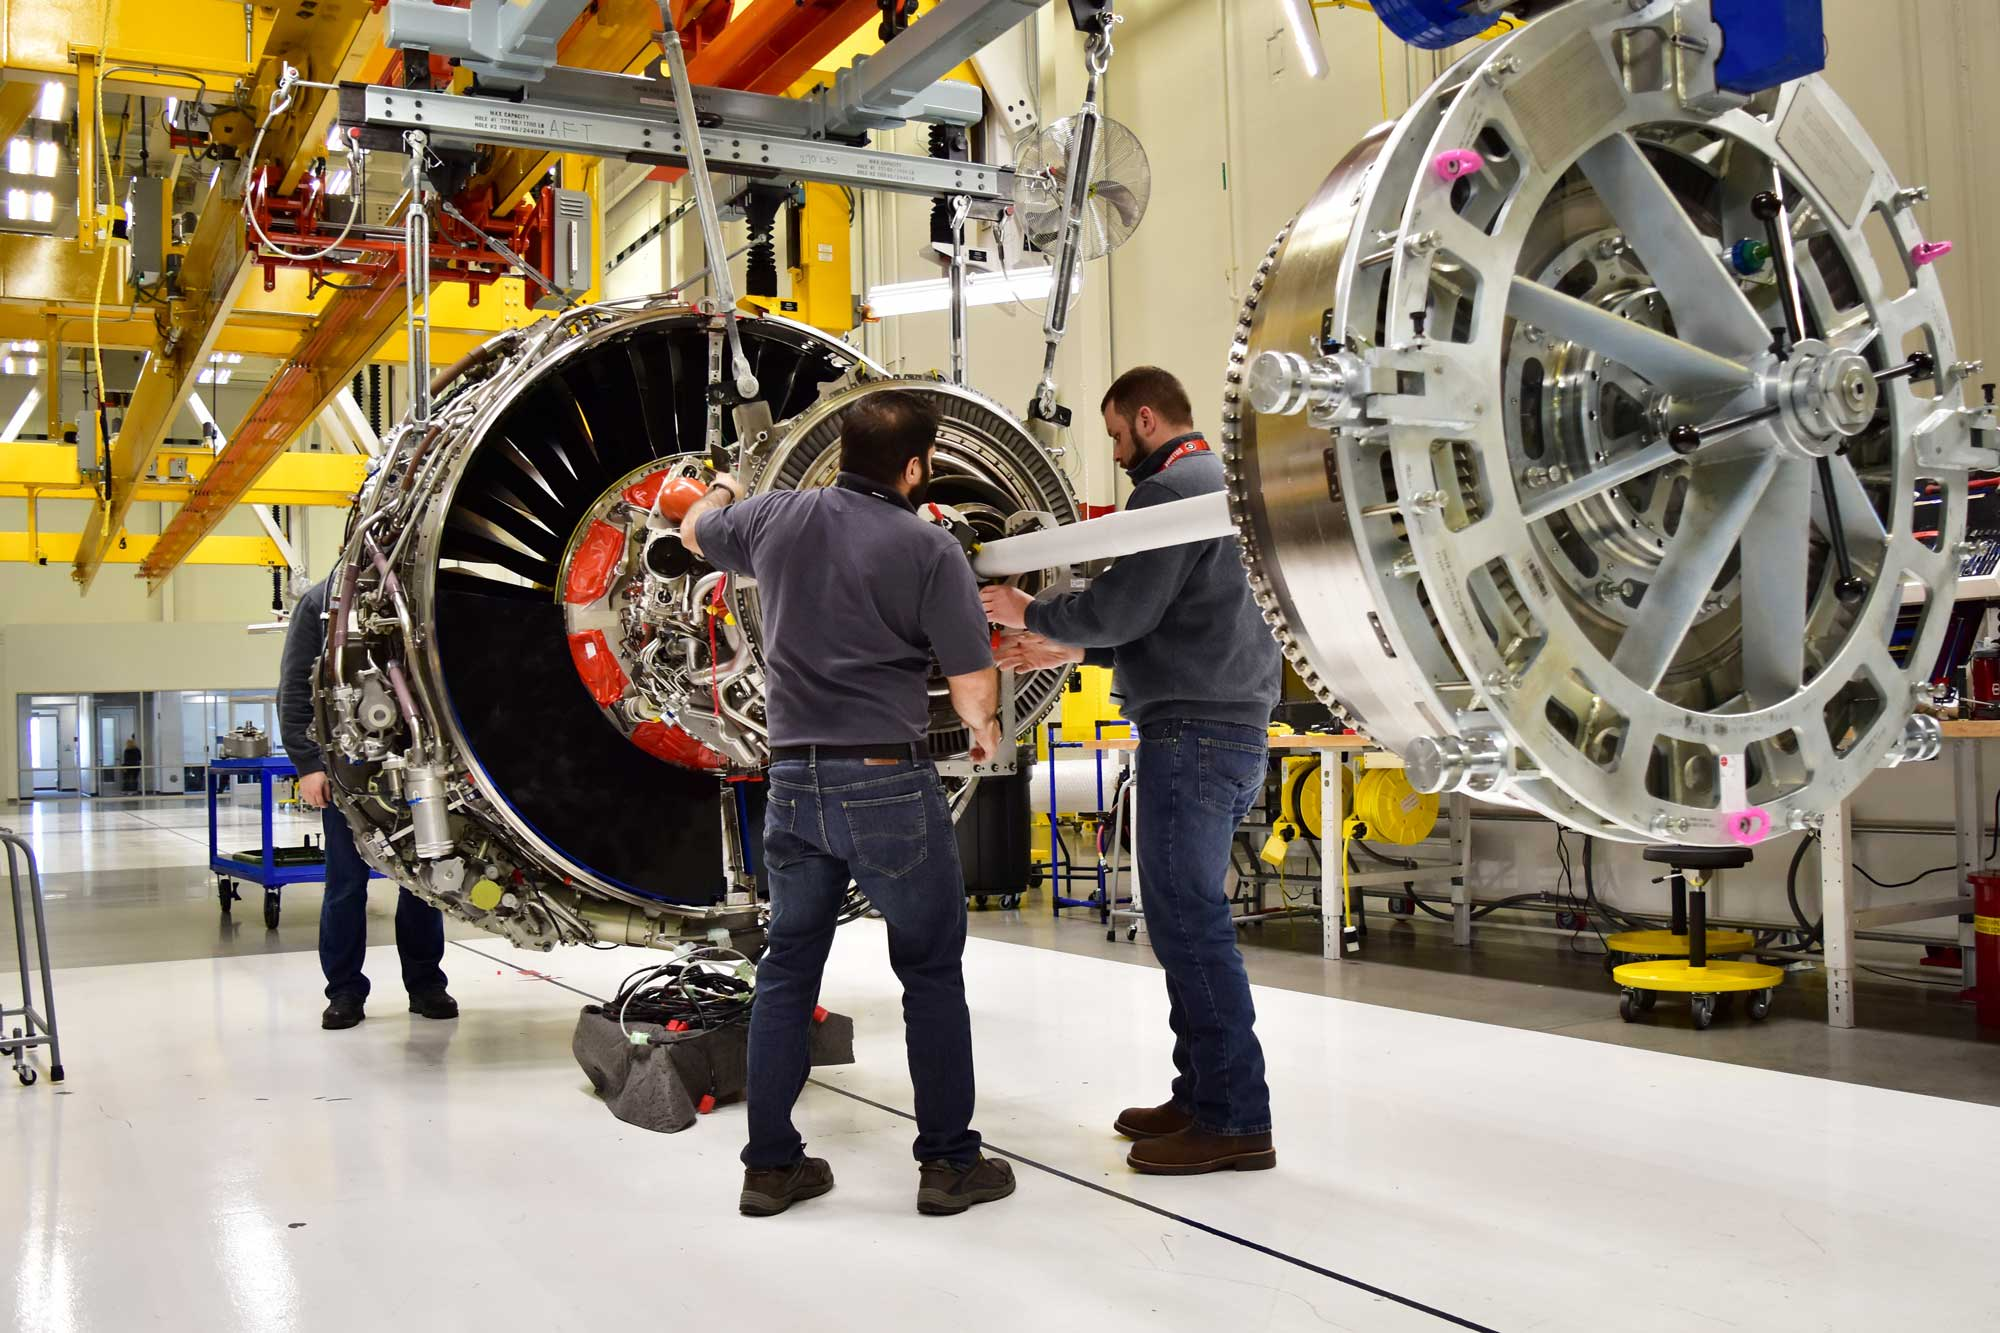 GE lost $1.4 billion this year from Boeing 737 Max grounding but expects the jet's return next year